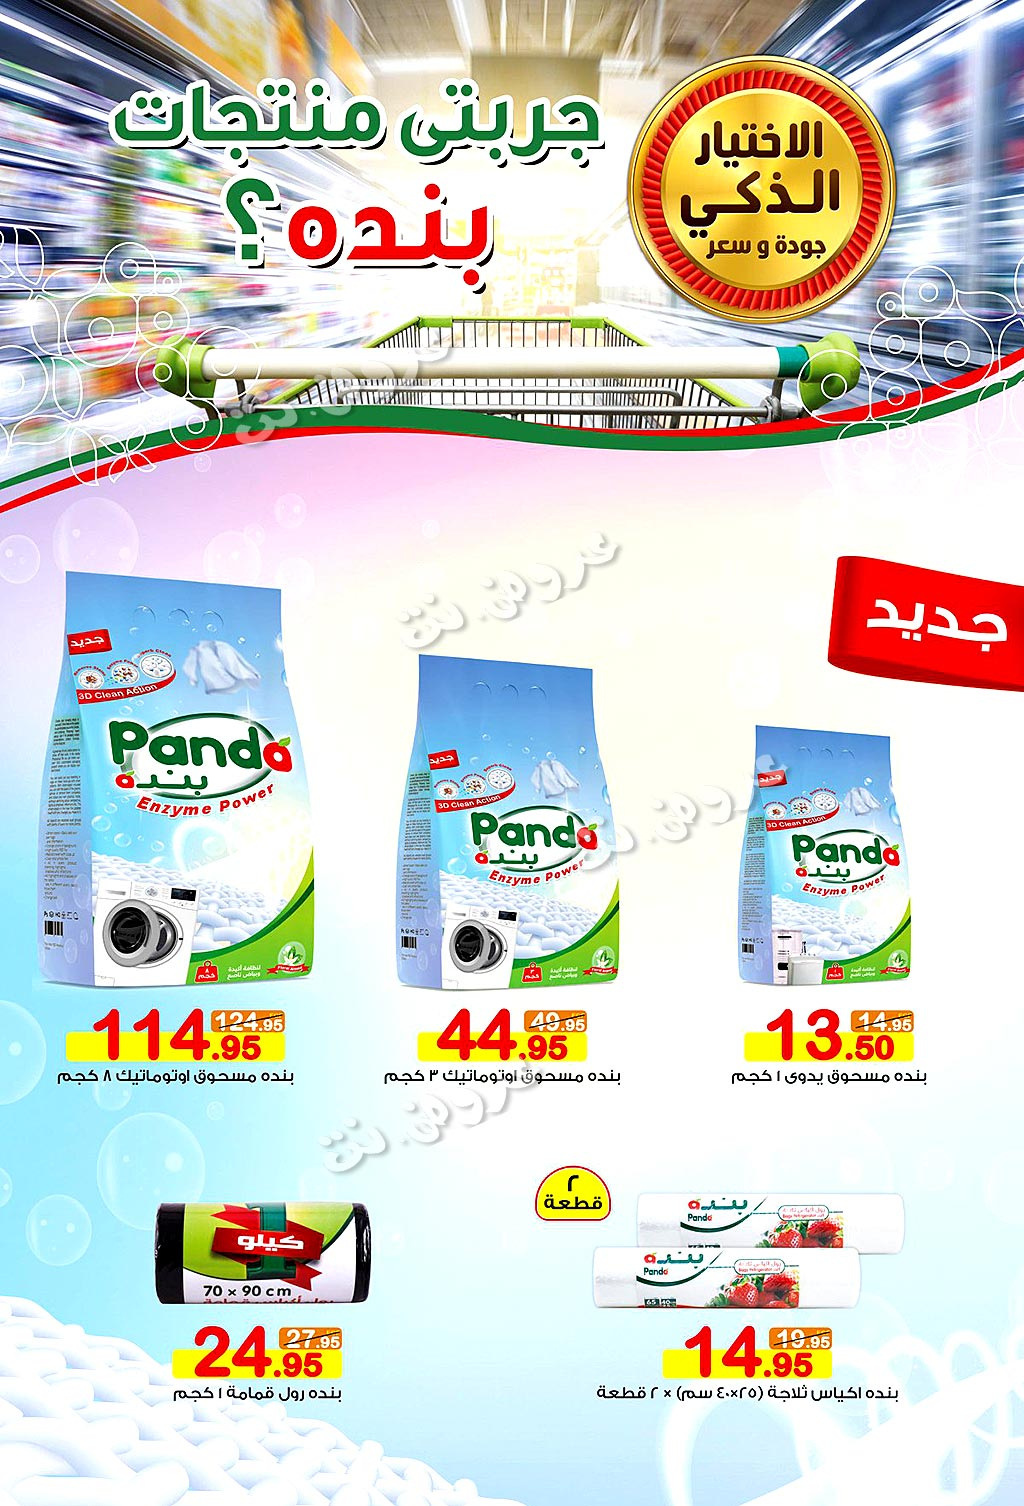 panda-egypt offers from 16sep to 29sep 2020 page number 30 عروض بنده مصر من 16 سبتمبر حتى 29 سبتمبر 2020 صفحة رقم 30